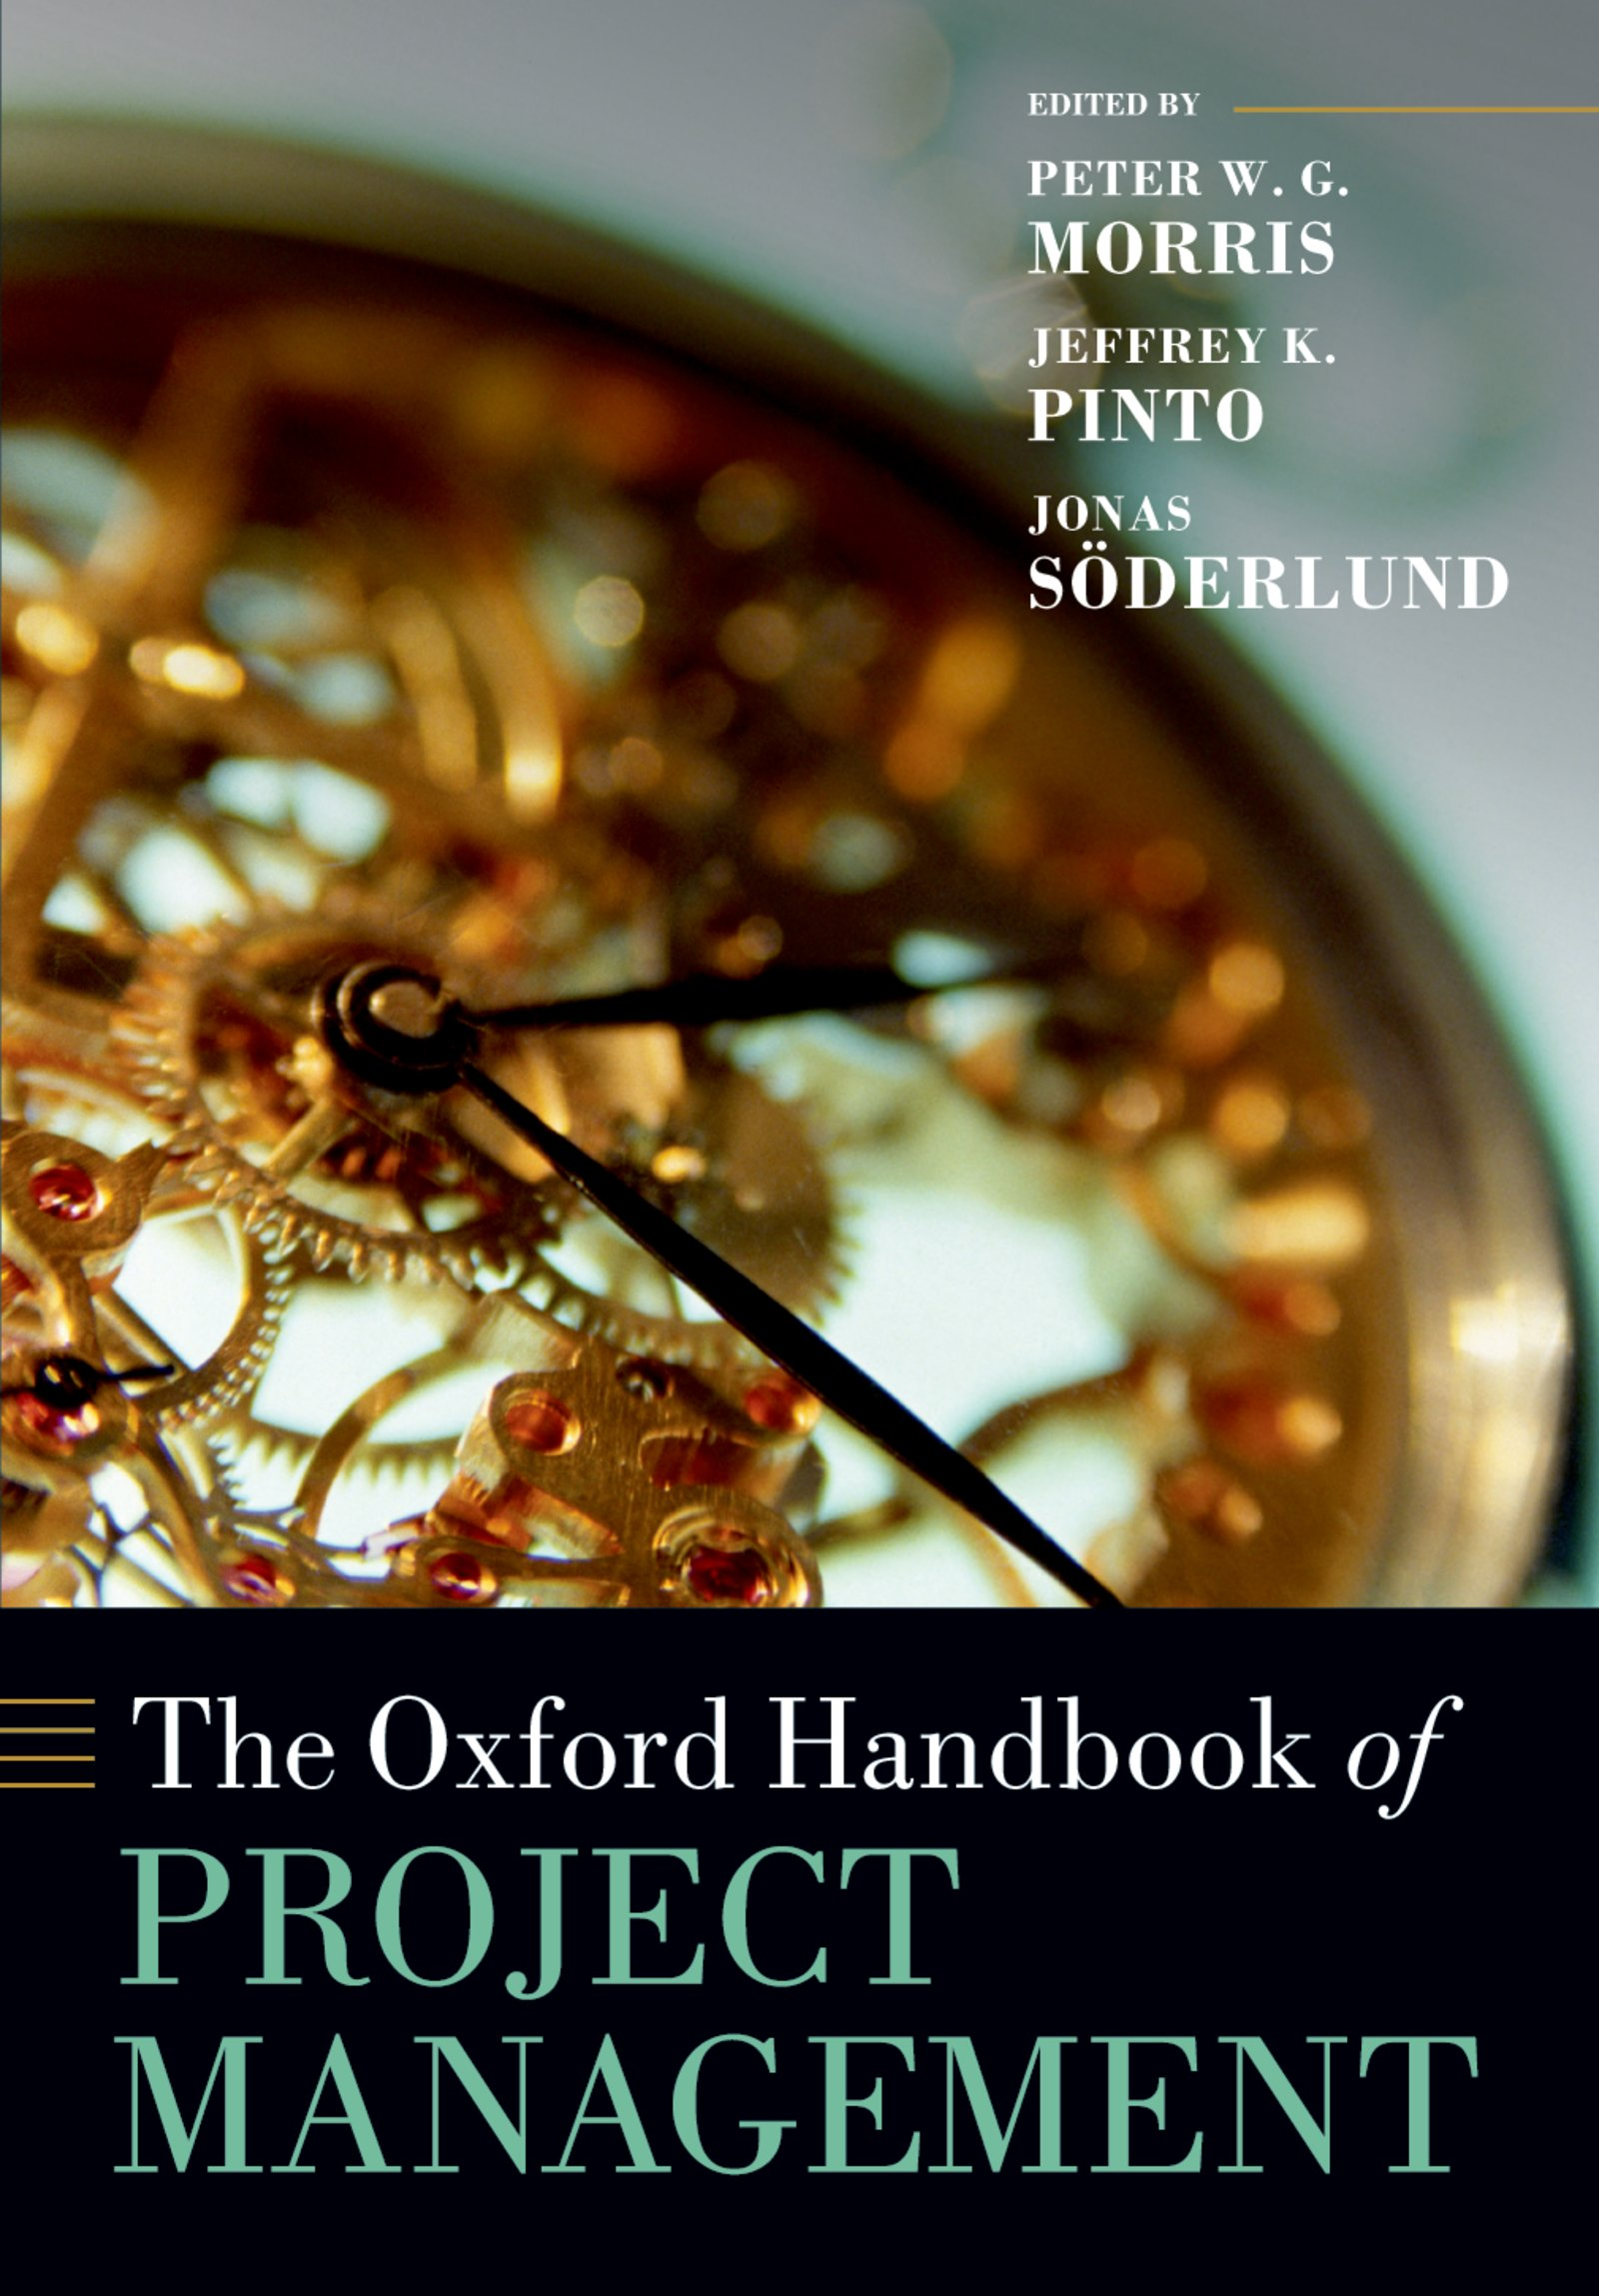 Download Ebook The Oxford Handbook of Project Management by Peter W. G. Morris Pdf